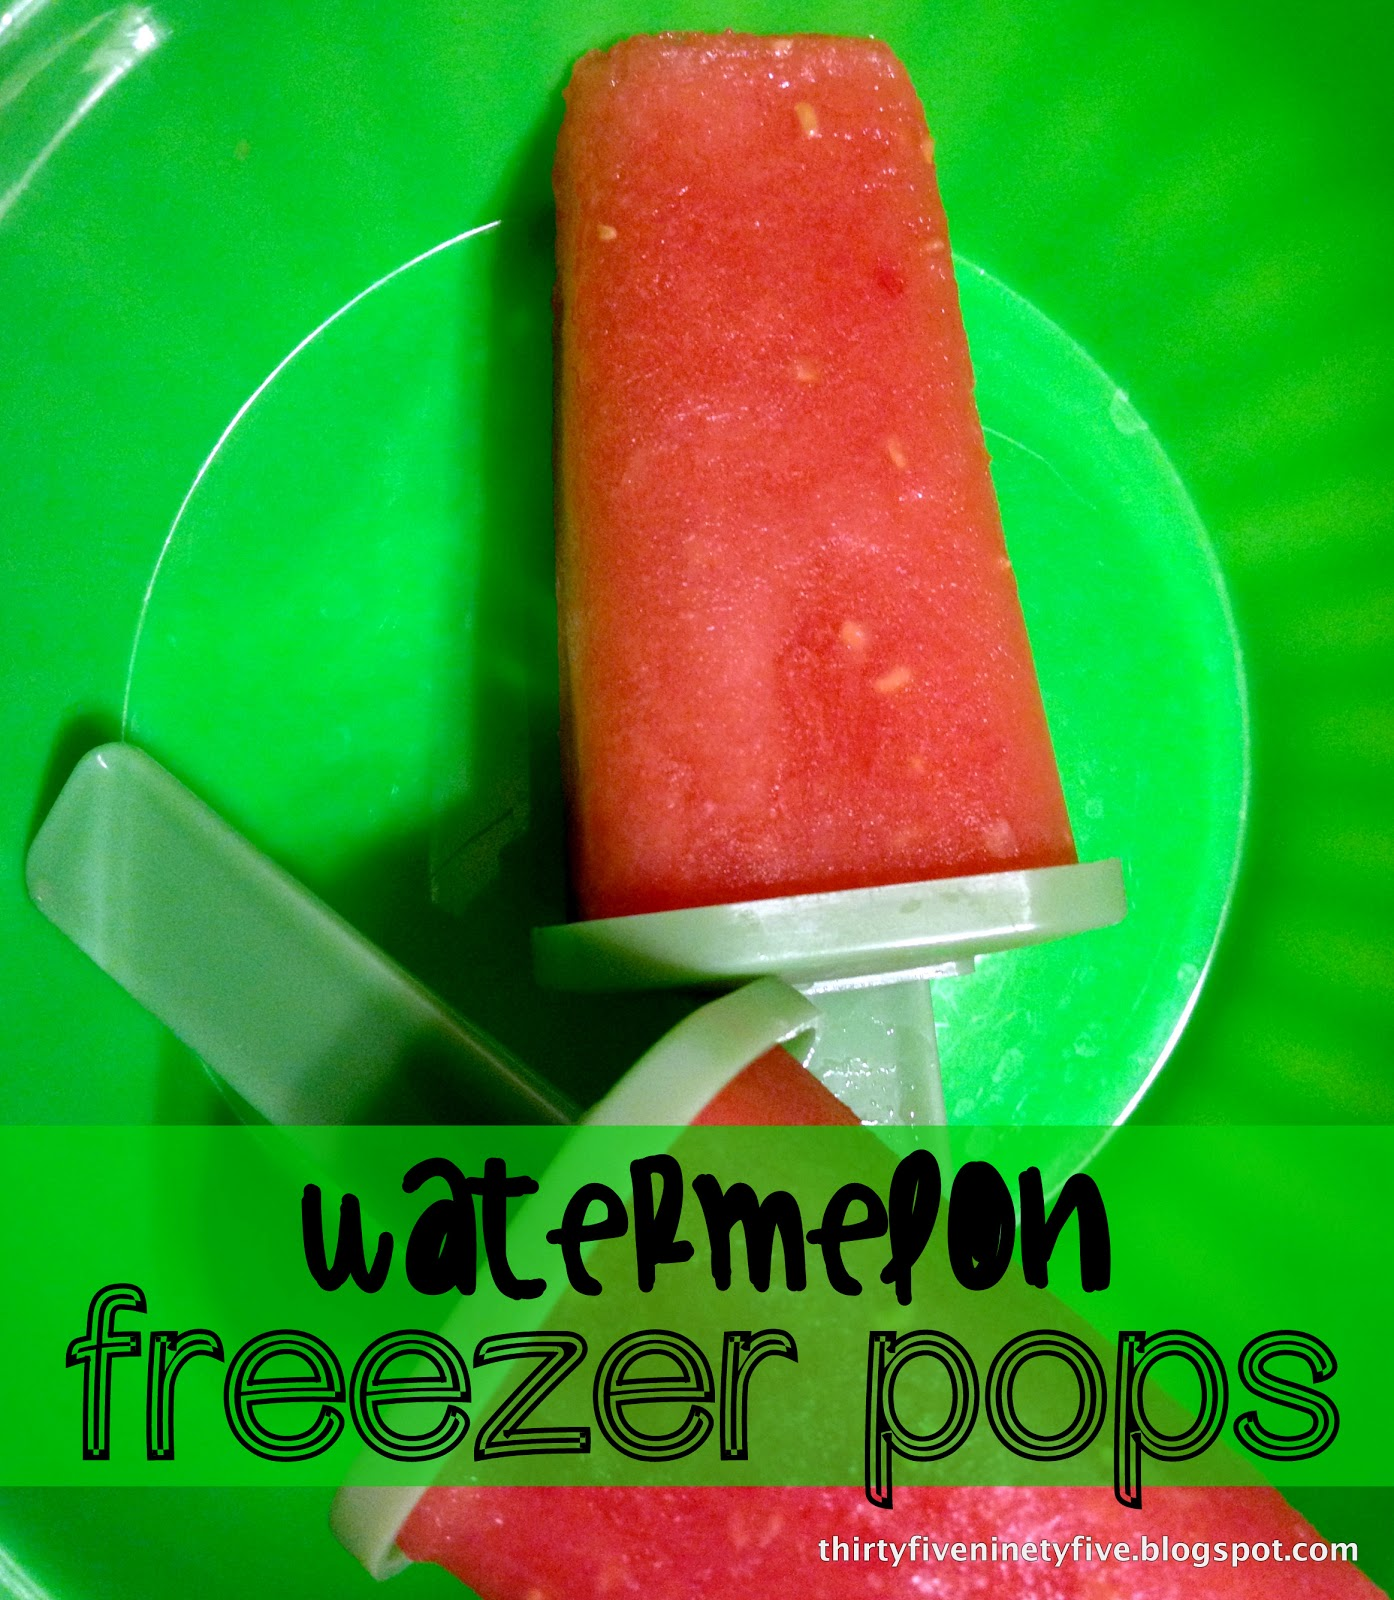 3595: Watermelon Freezer Pops